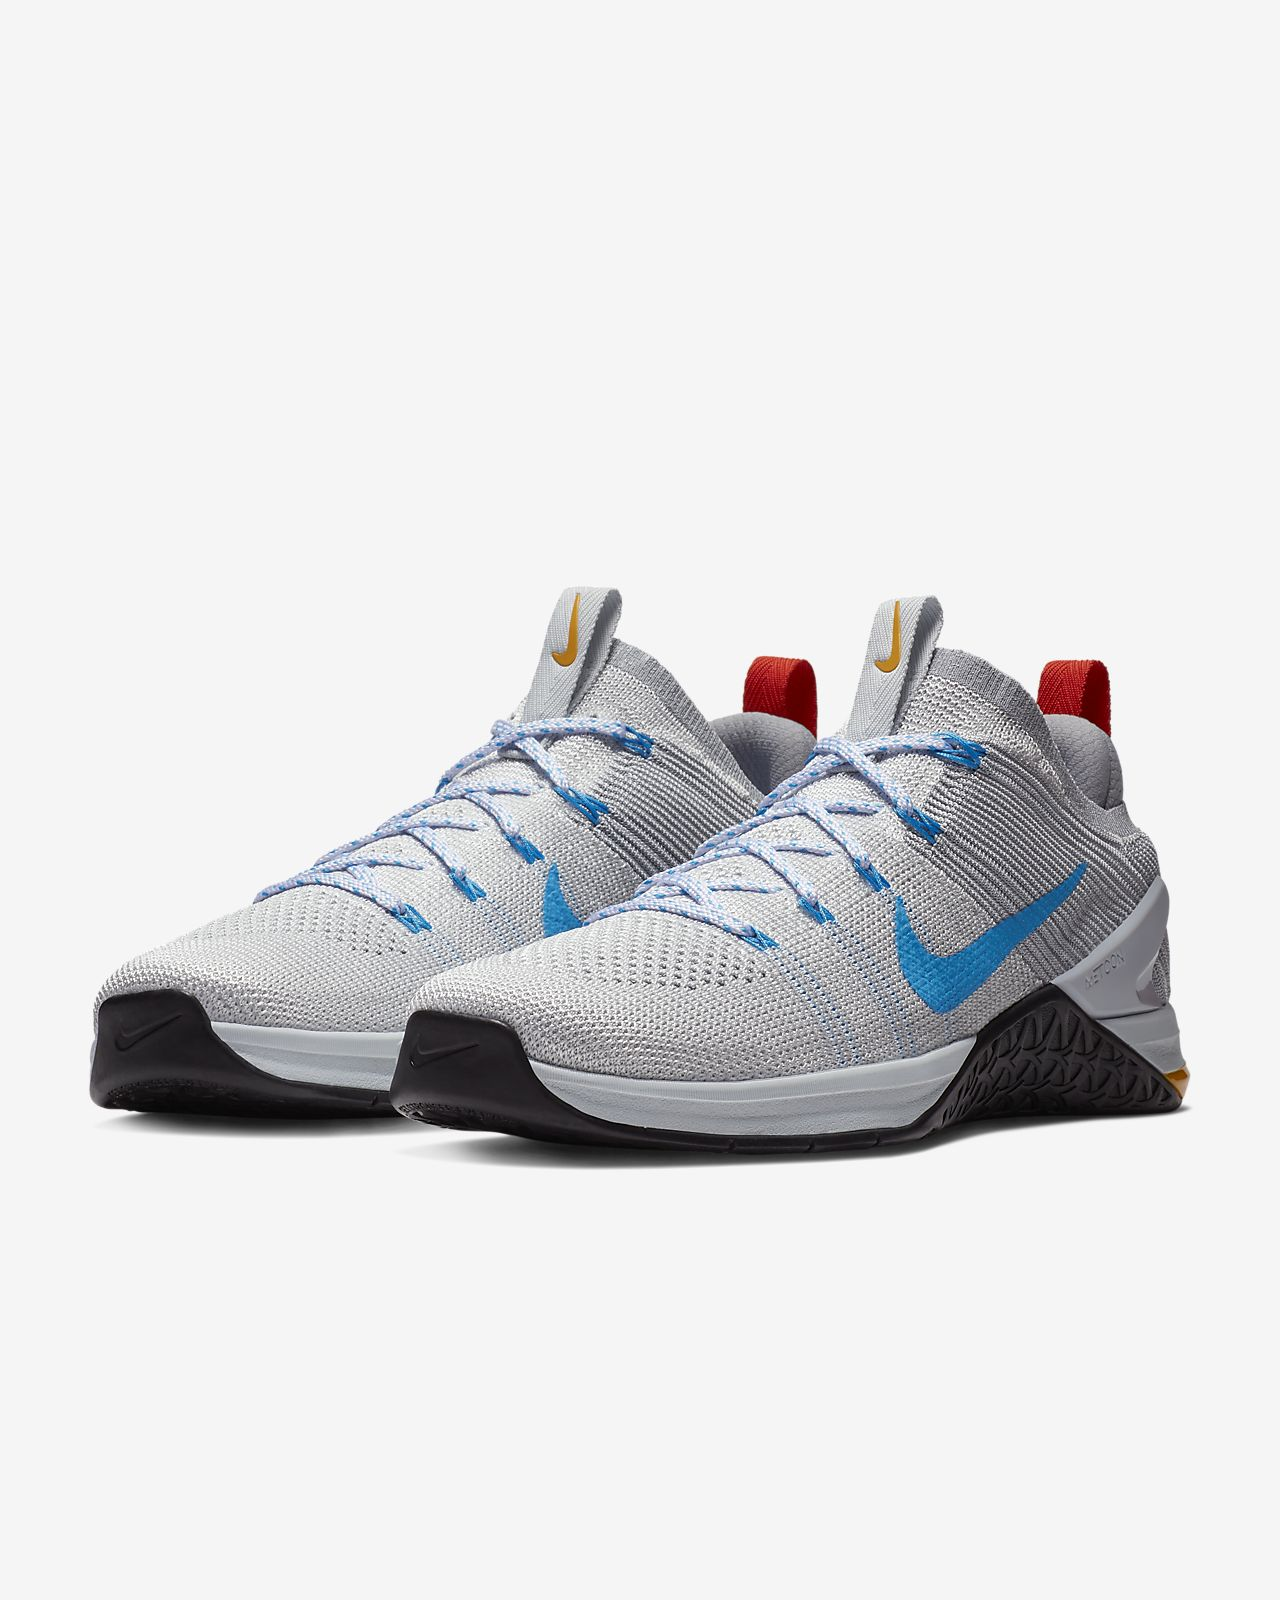 f64b1b689d3887 Nike Metcon DSX Flyknit 2 Men s Cross Training Weightlifting Shoe ...